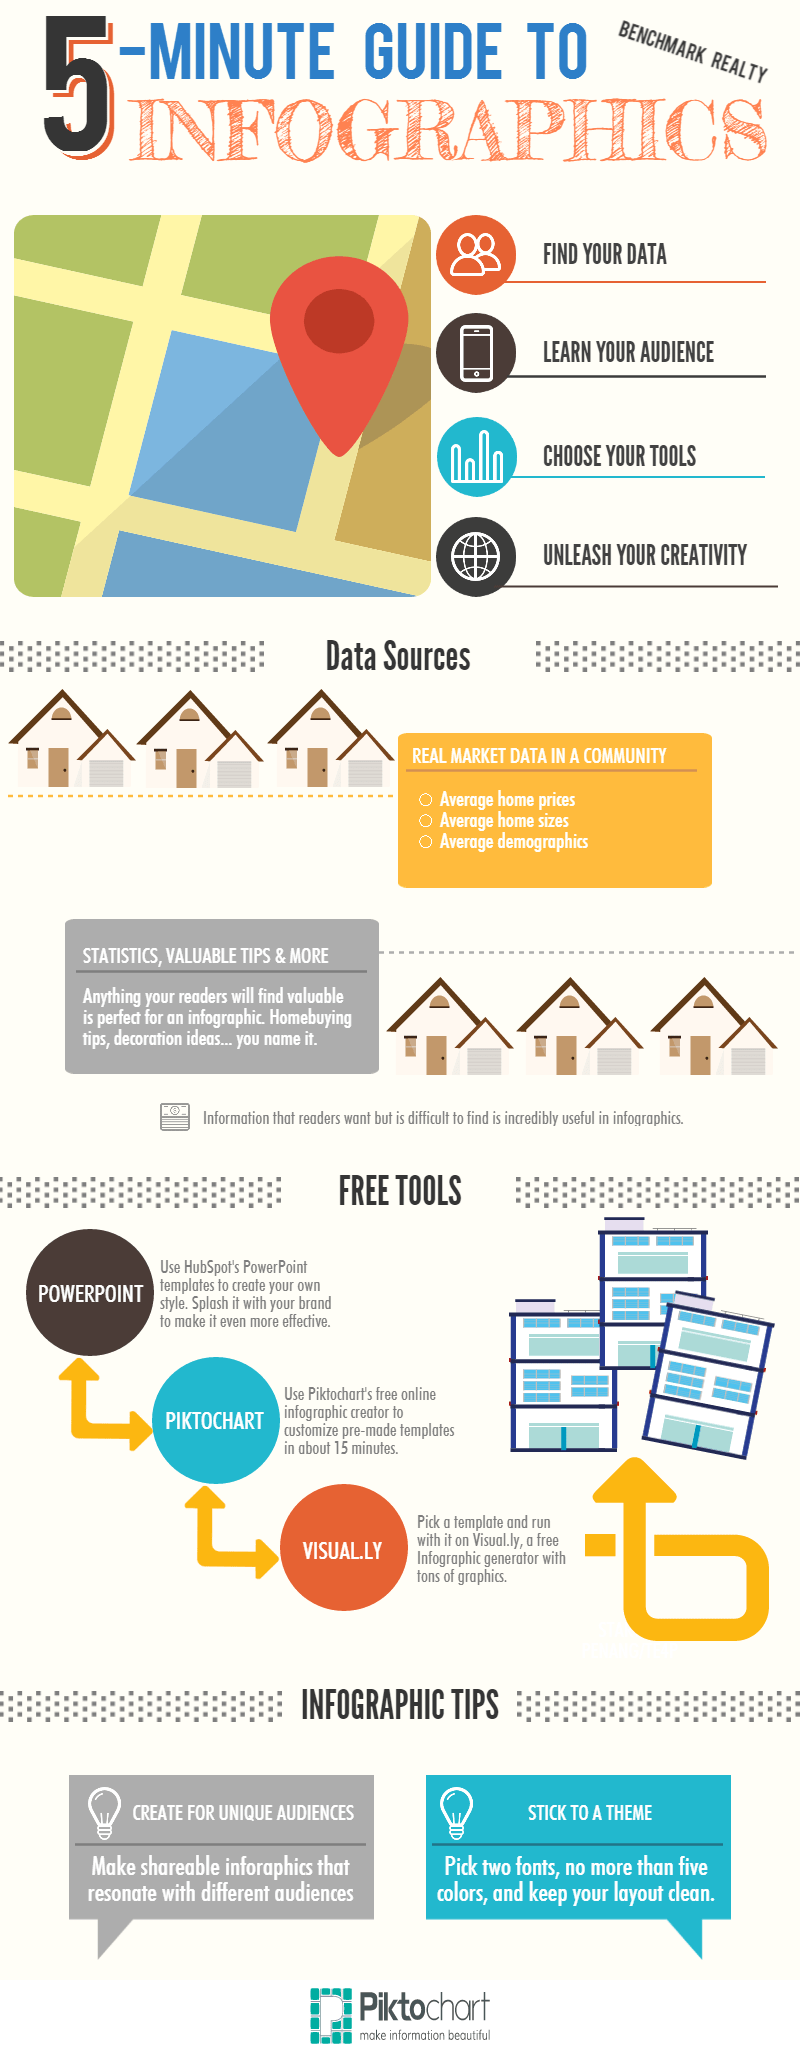 Using Infographics in Your Real Estate Business